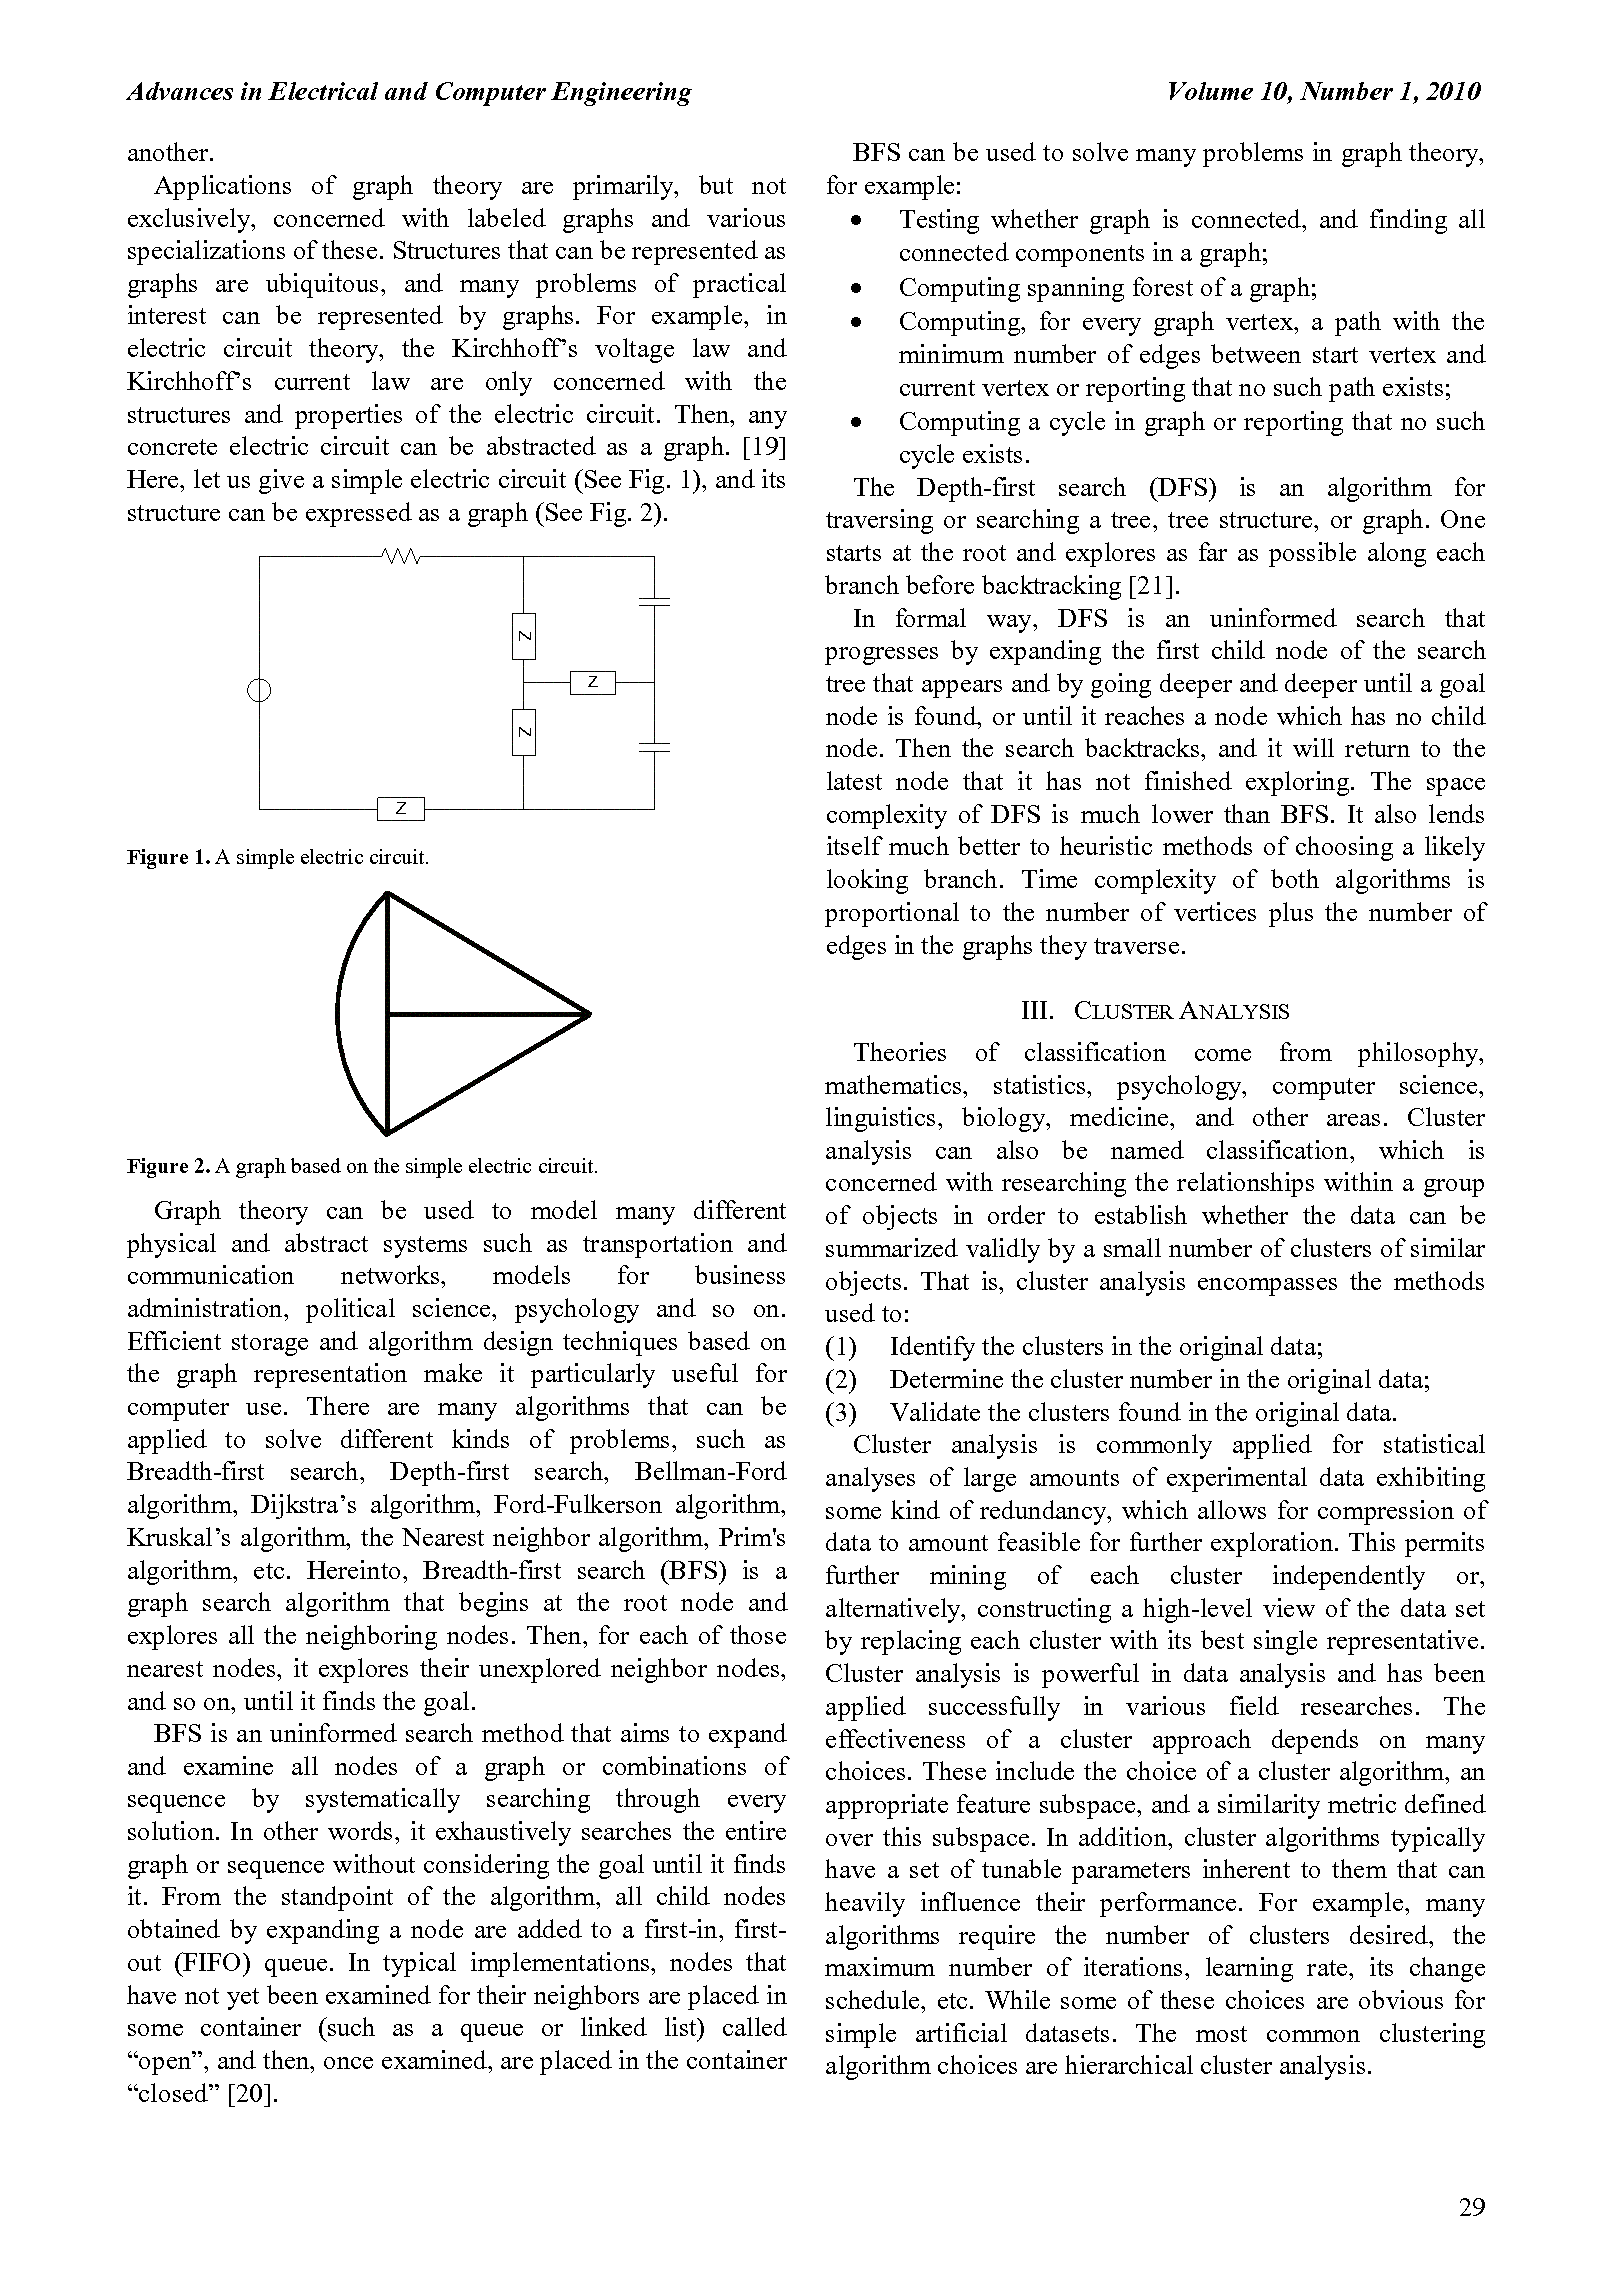 PDF Quickview for paper with DOI:10.4316/AECE.2010.01005